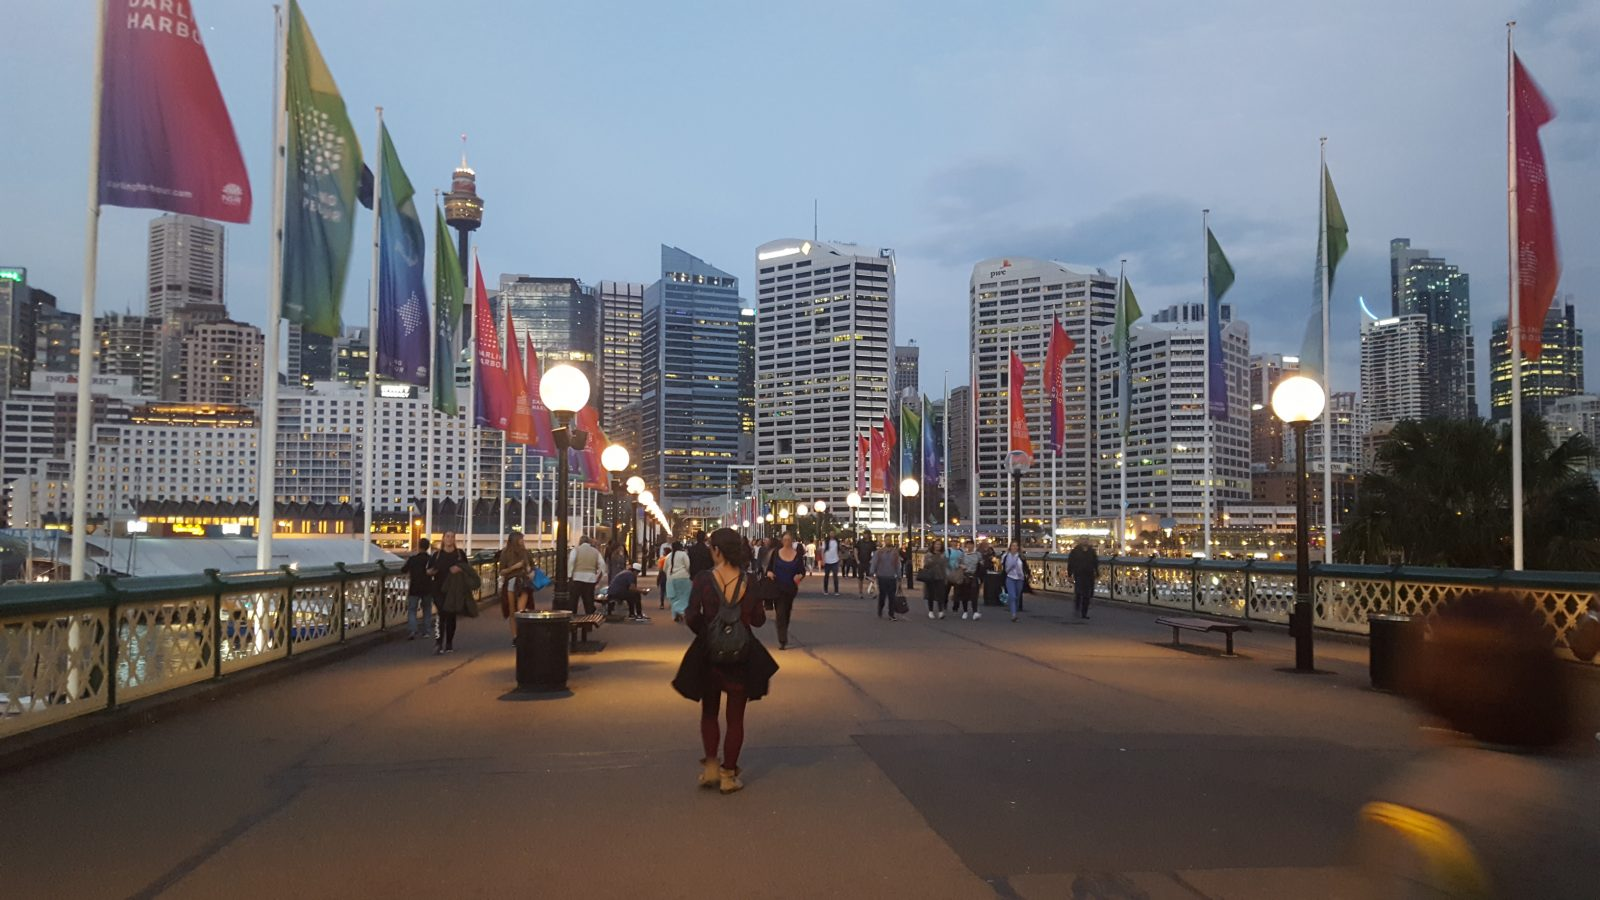 Balade Darling Harbour